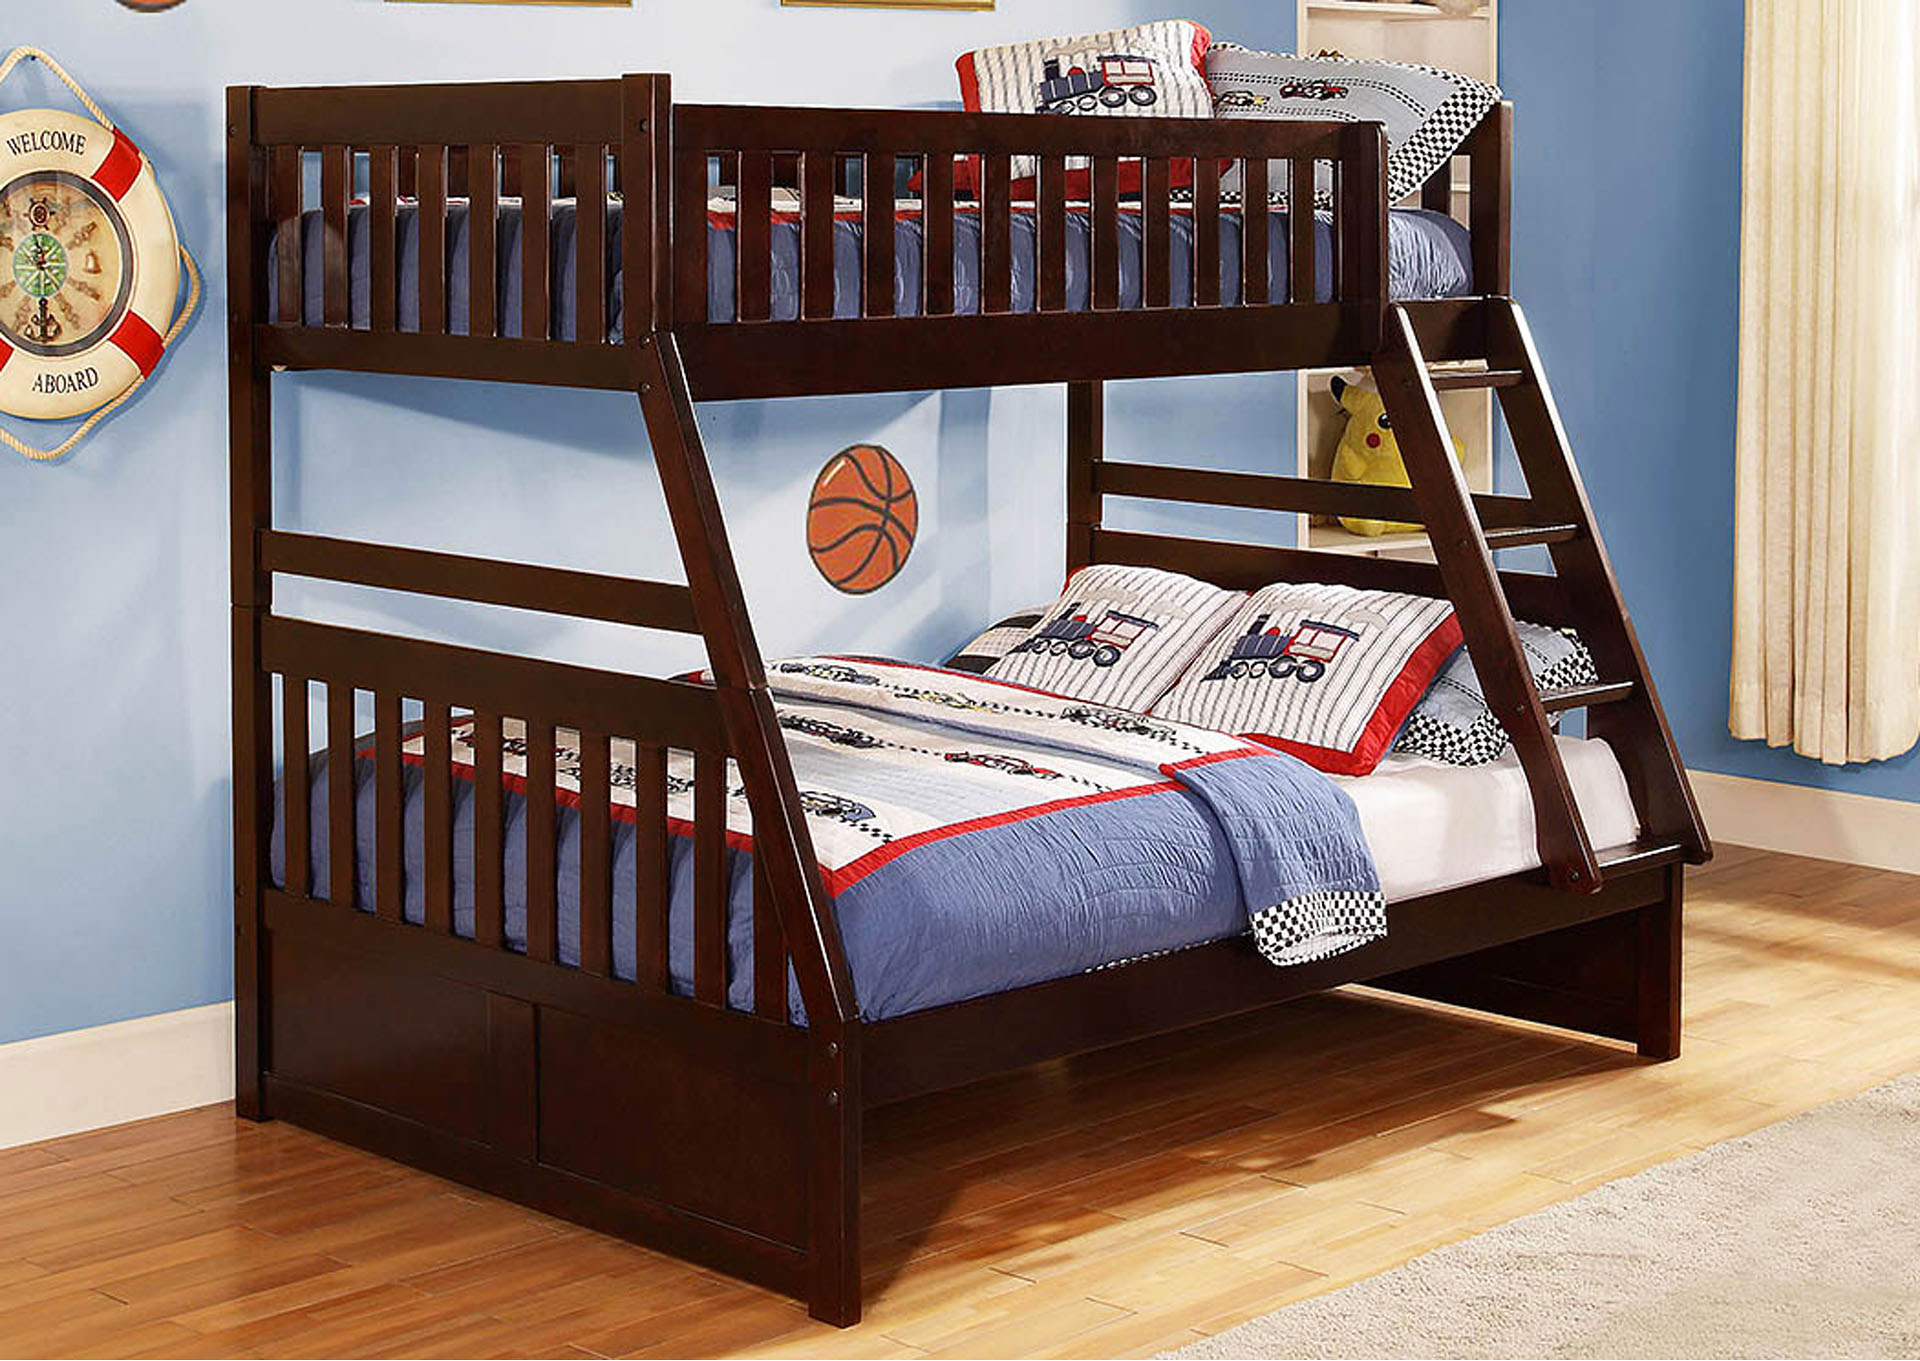 Rowe Dark Cherry Twin/Full Bunk Bed,Homelegance